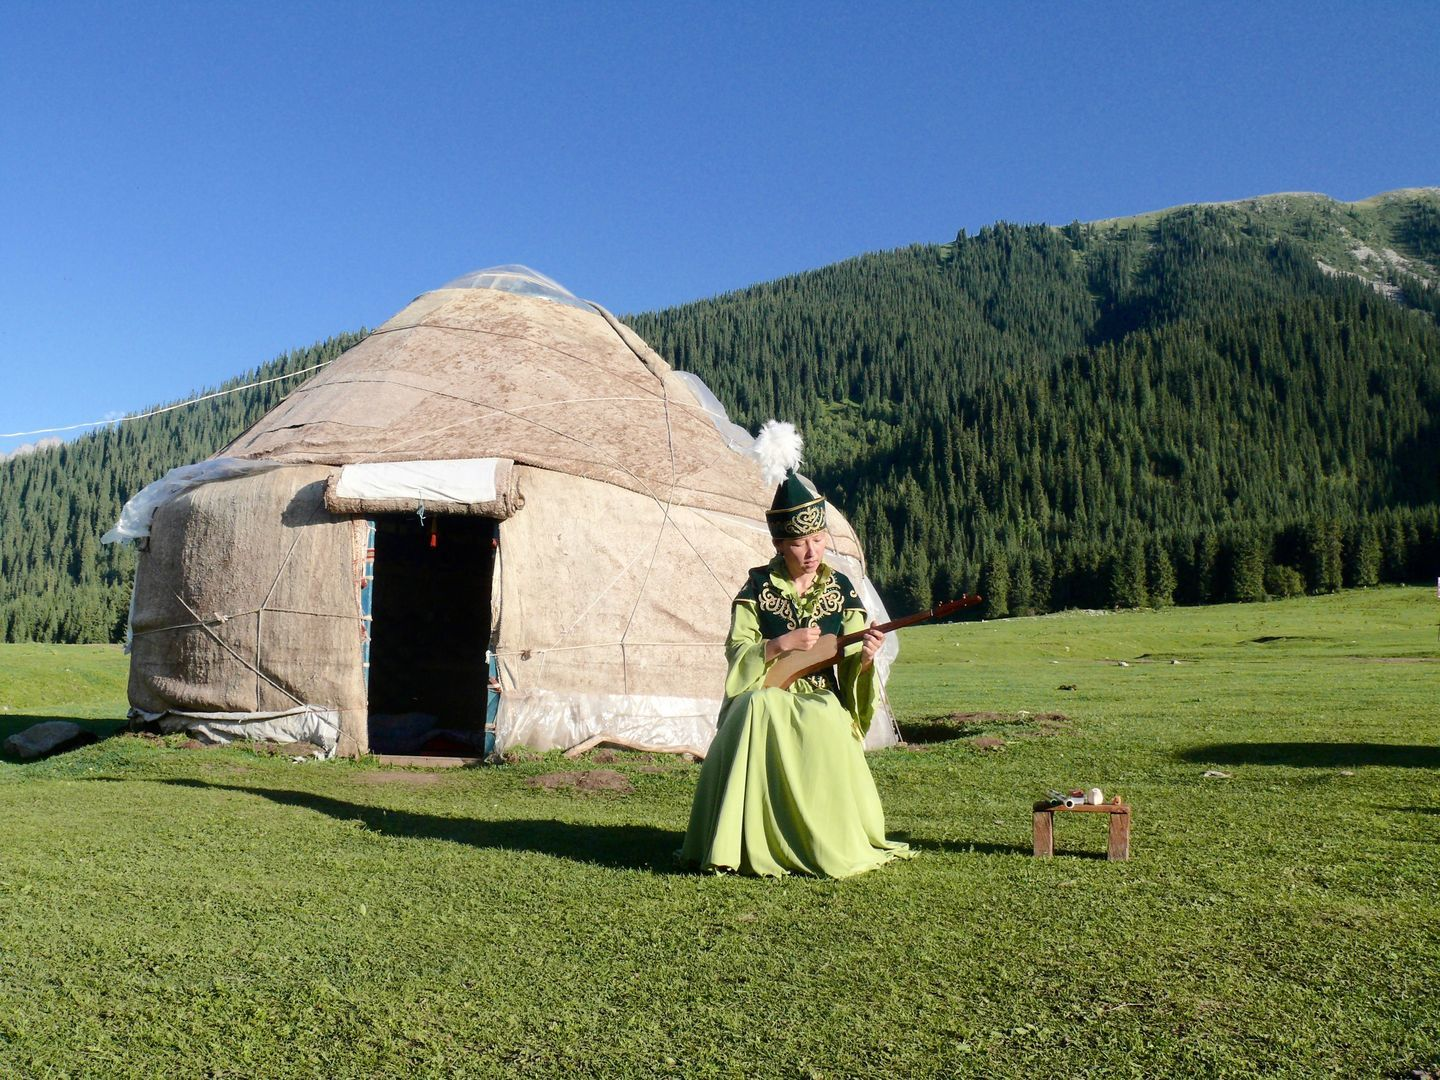 kyrgyz girl singing in fornt of the yurt